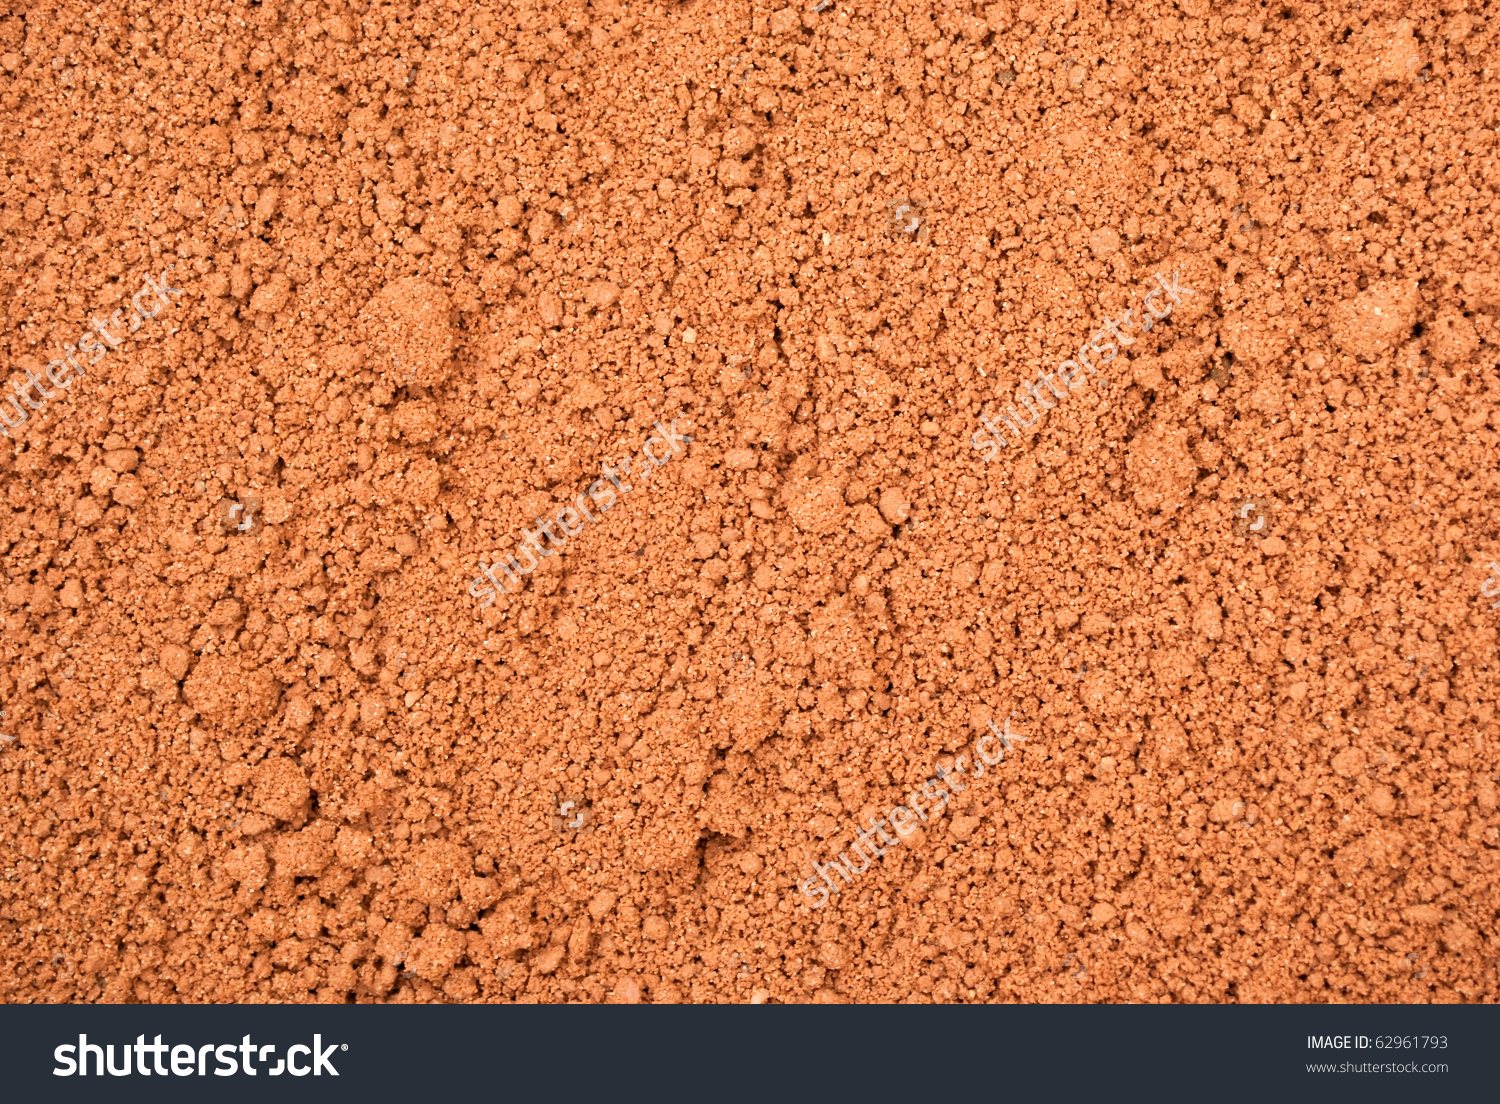 Soil clipart clay soil Clipart (23+) Clipart clay soil